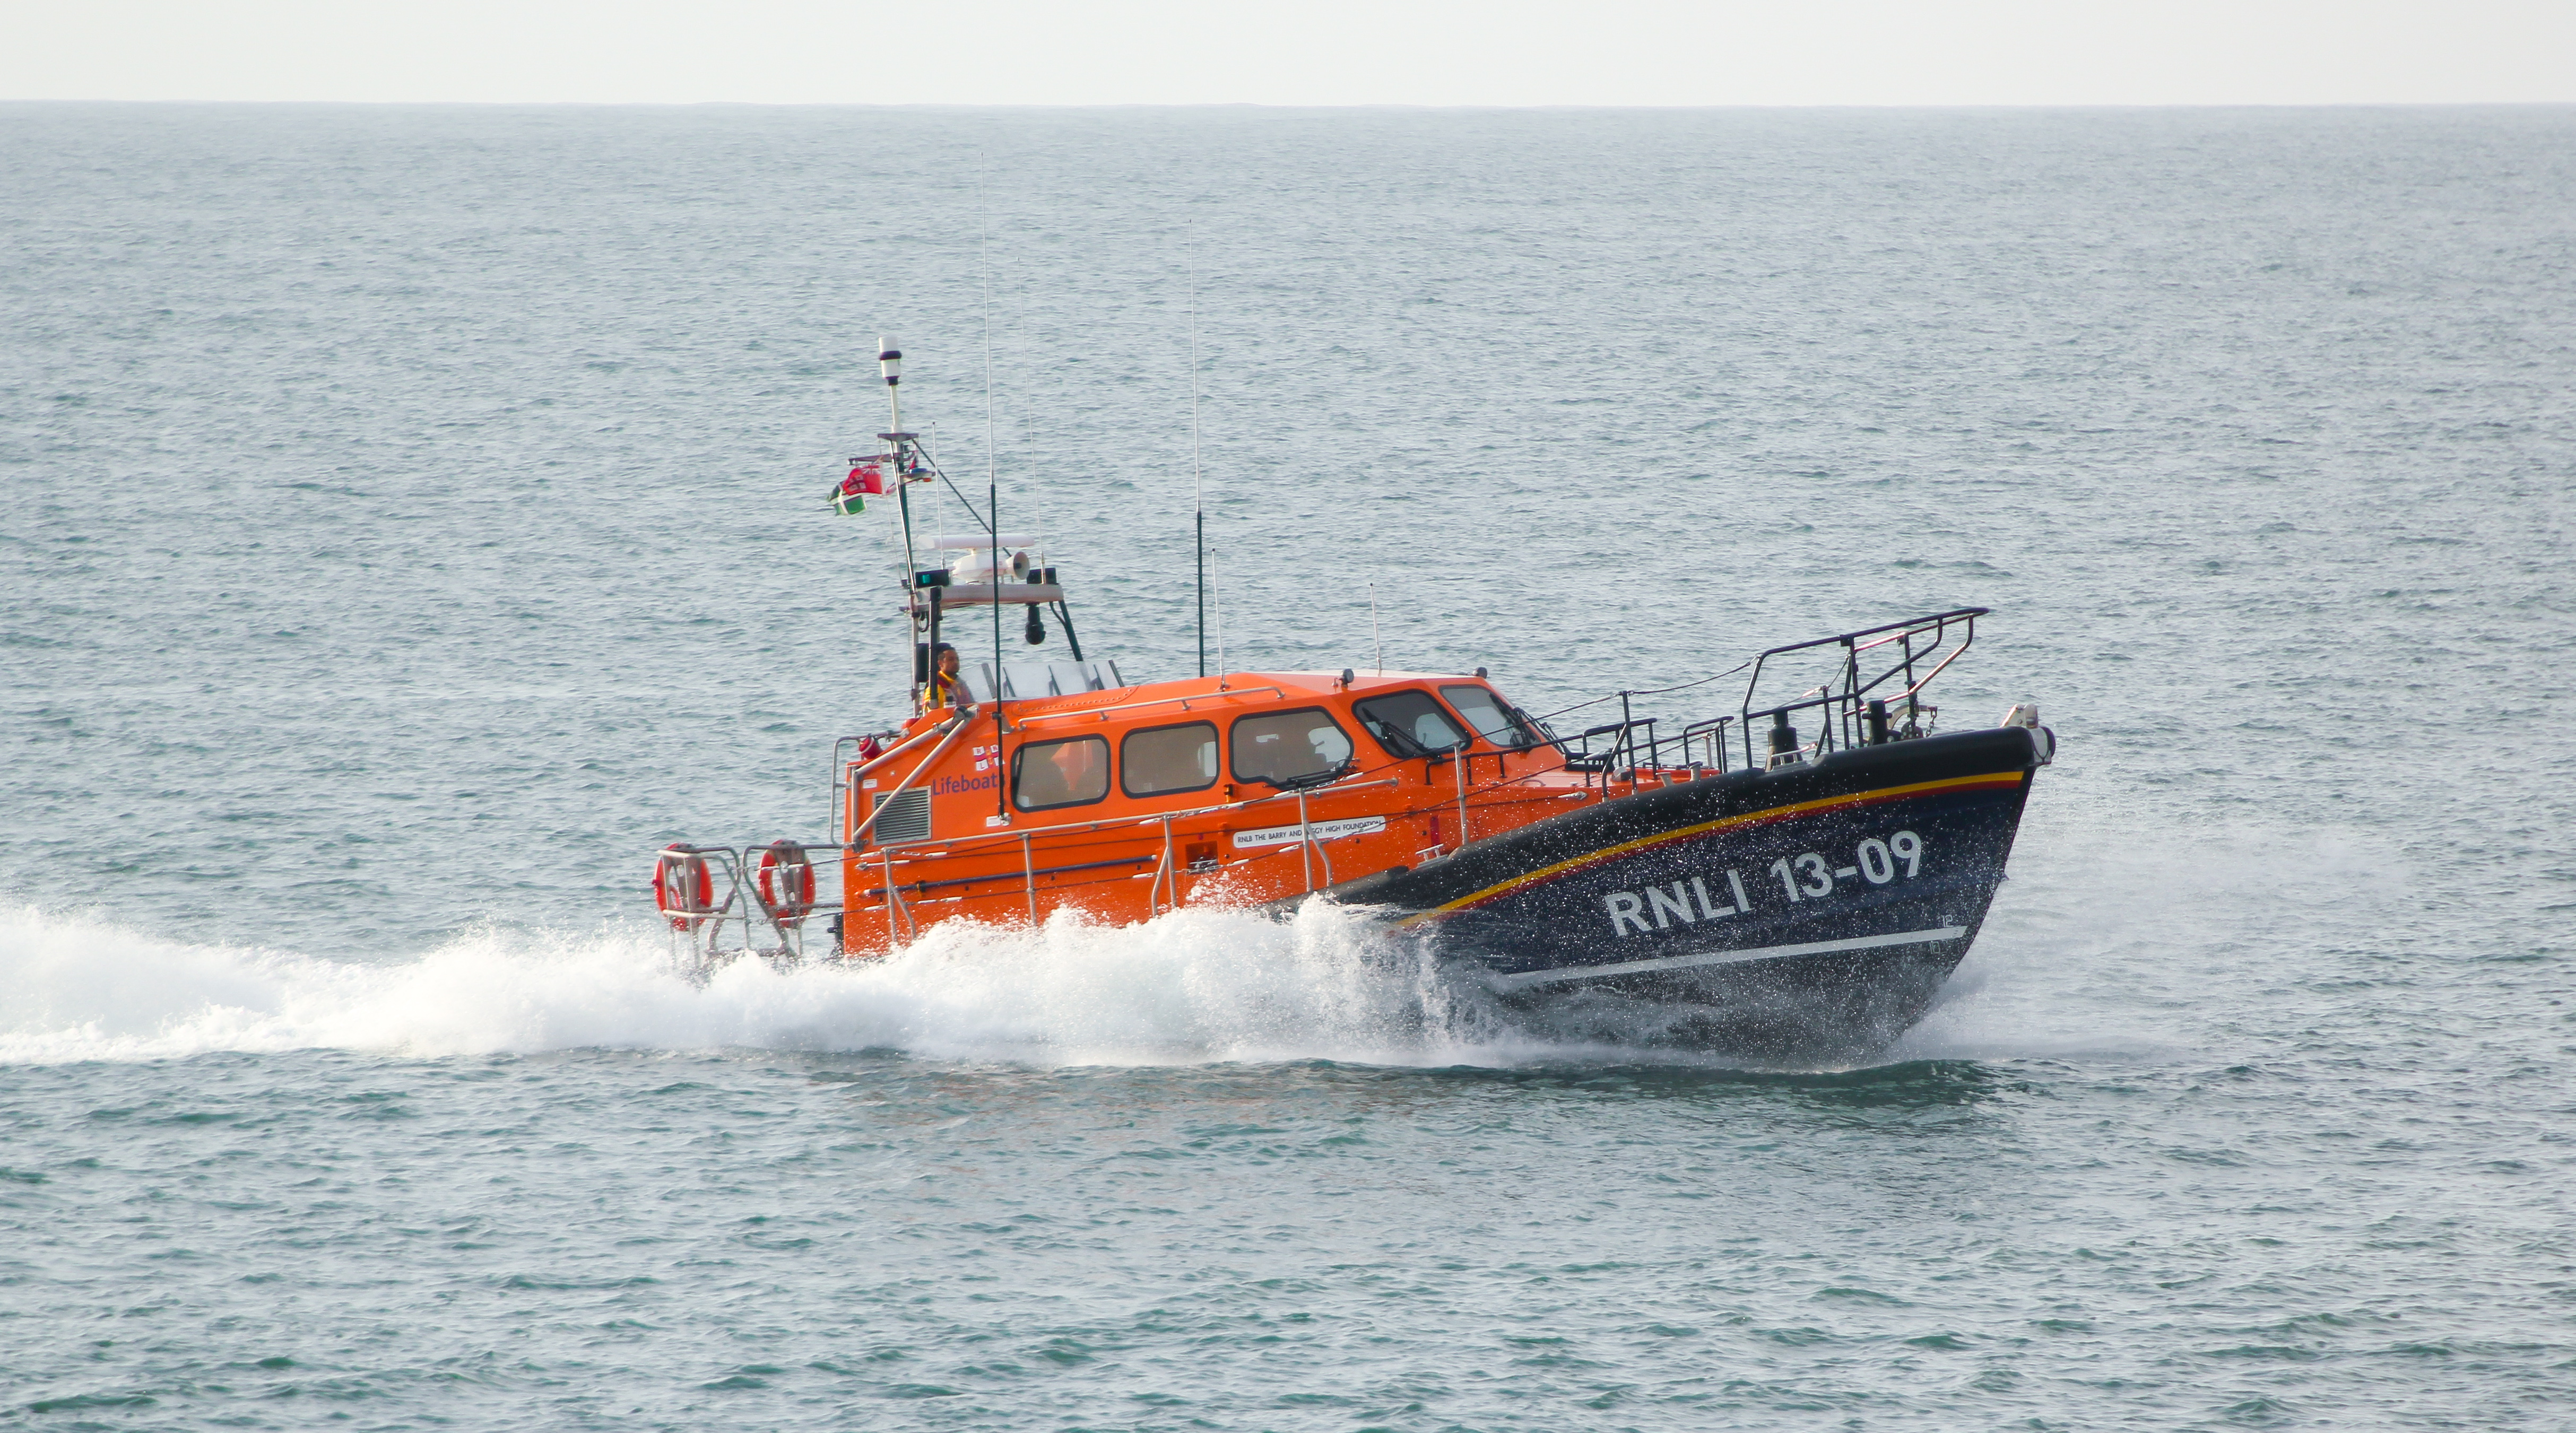 Shannon class lifeboat at sea returning to station